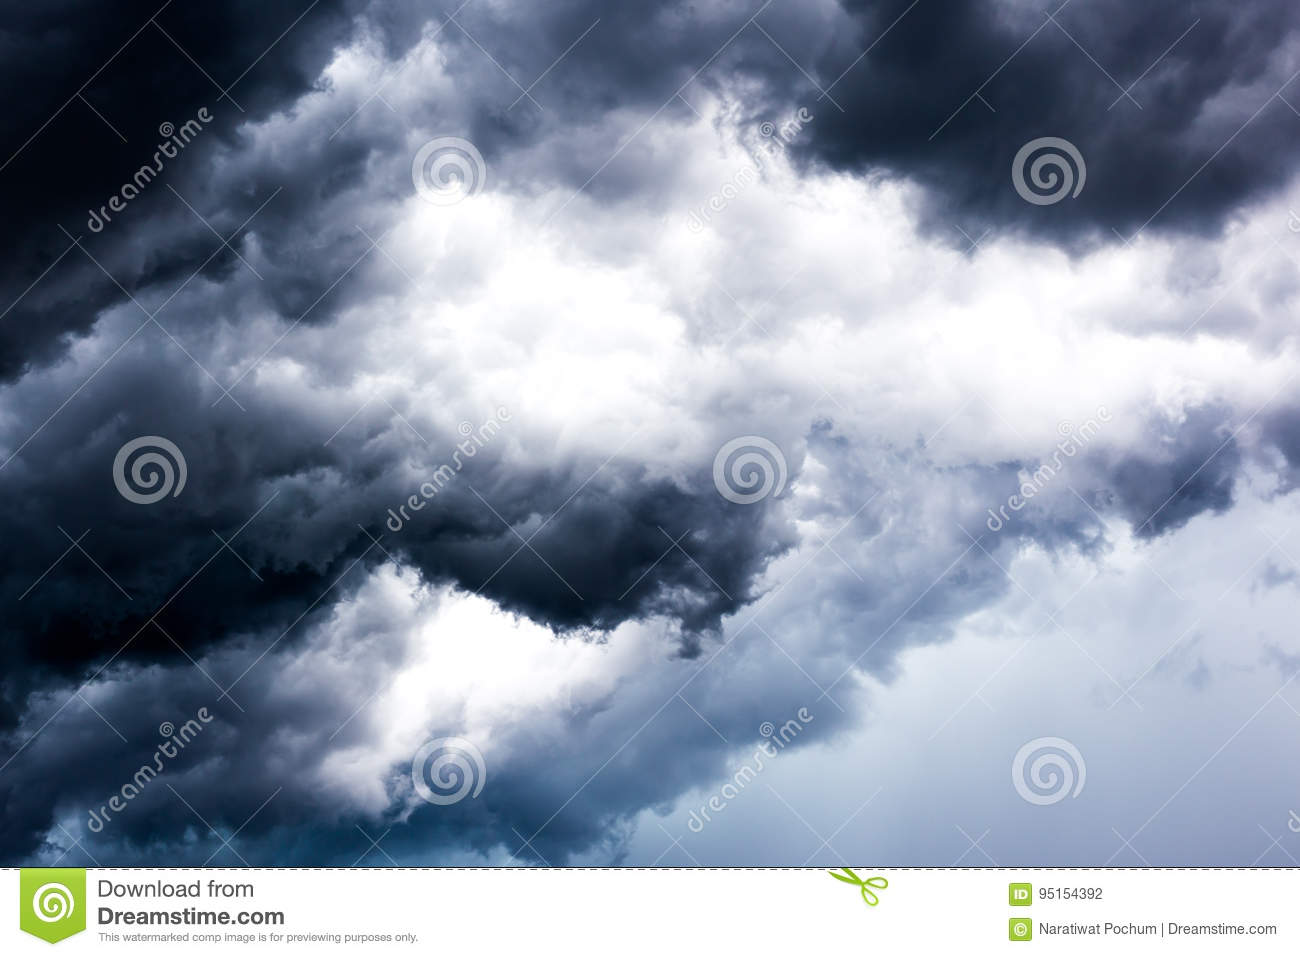 Black Clouds On Sky Dark Background Wallpaper Stock Photo Image Of Ozone Cloudy 95154392